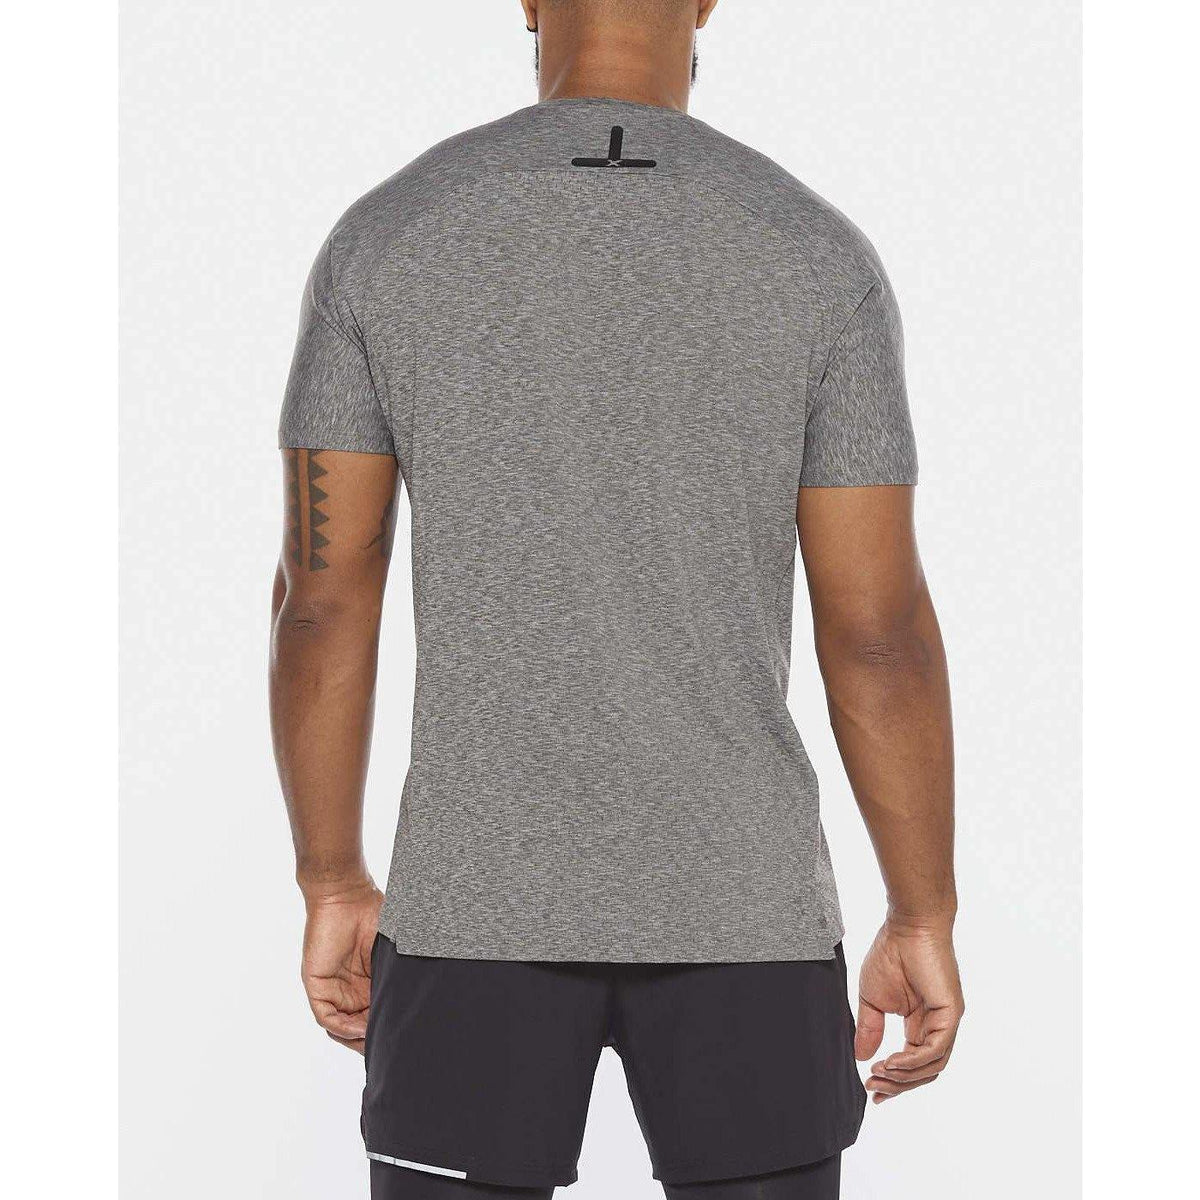 2XU Mens XCTRL T-Shirt